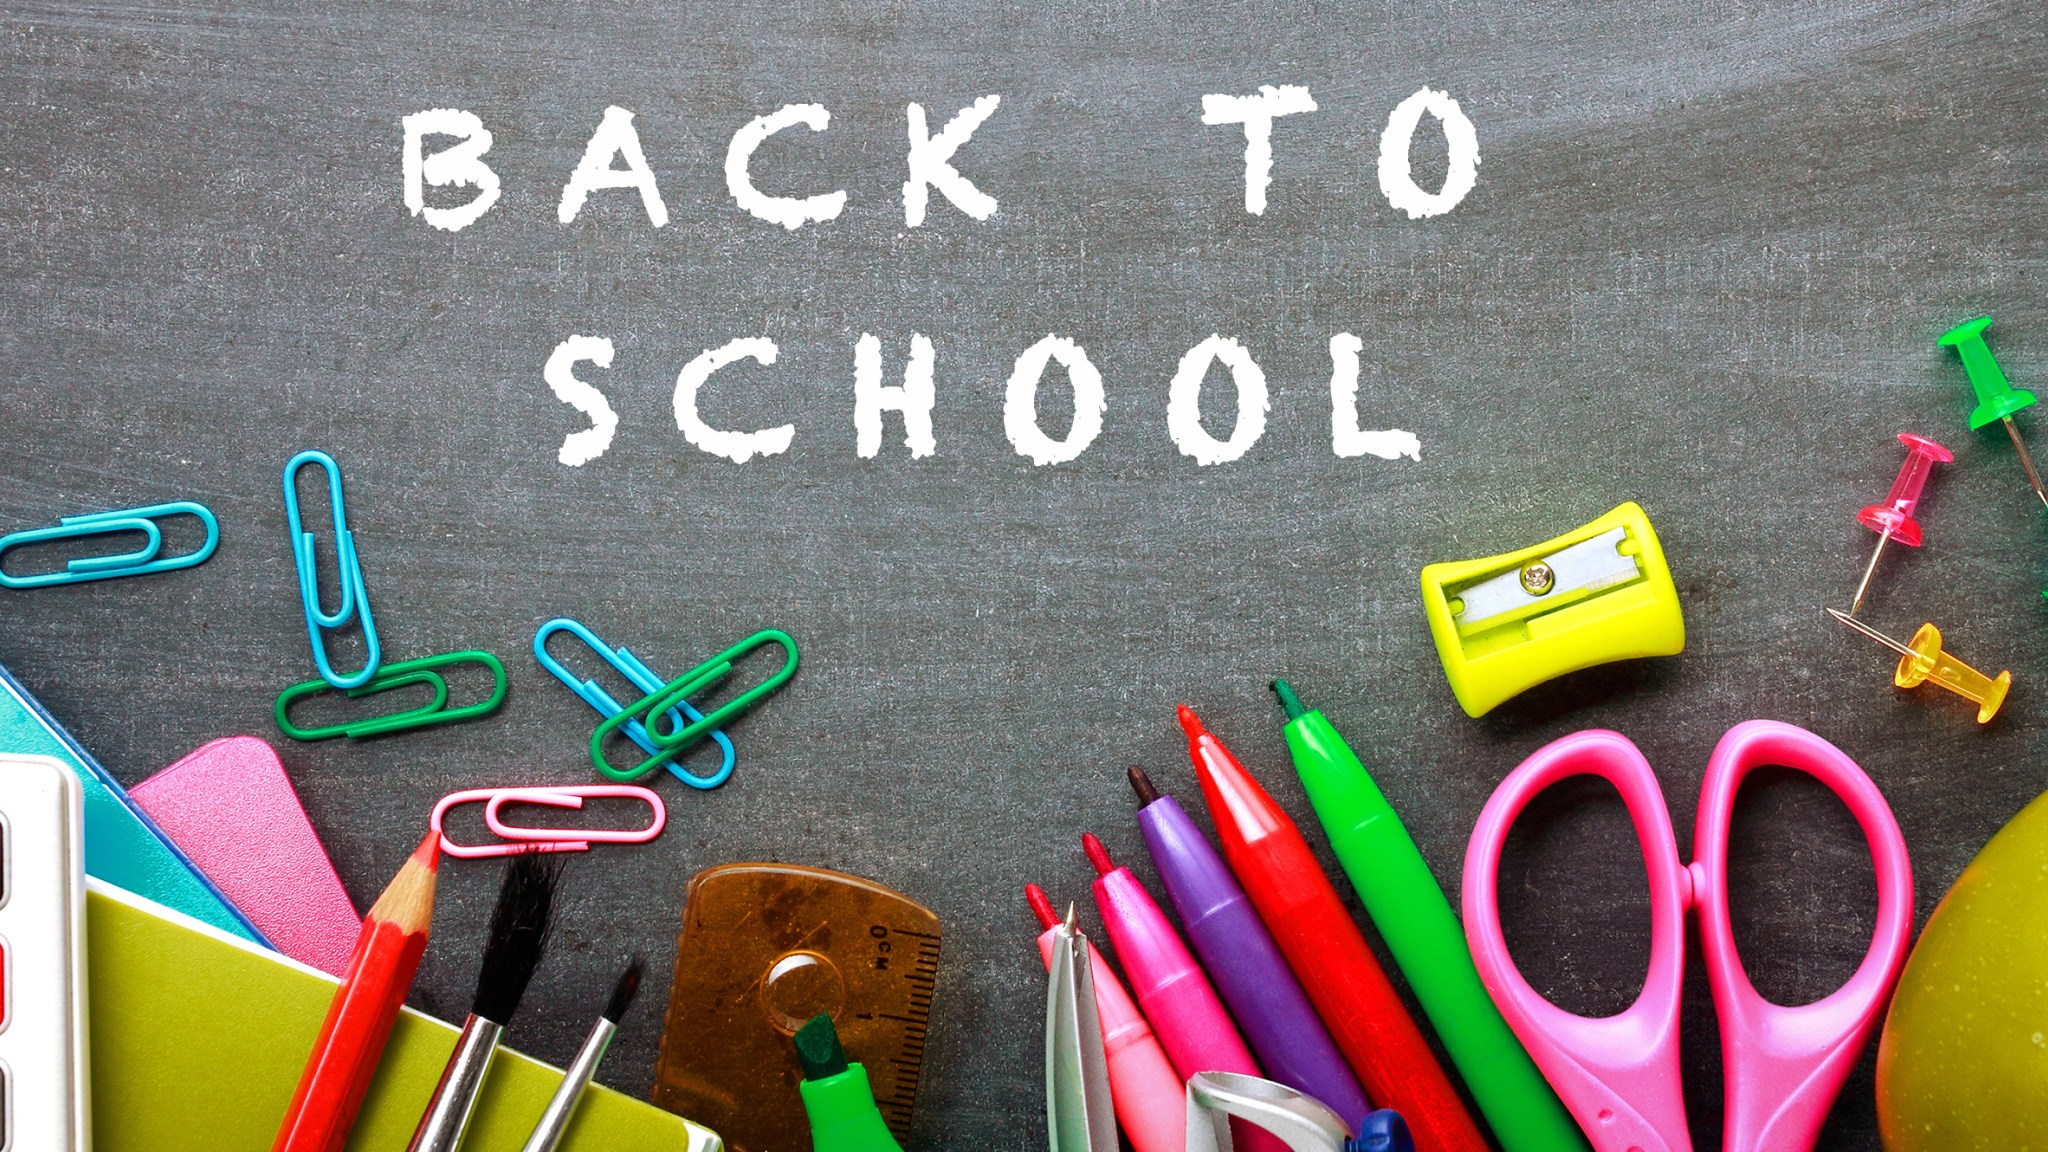 Back To School Wallpapers Hd Is Cool Wallpapers